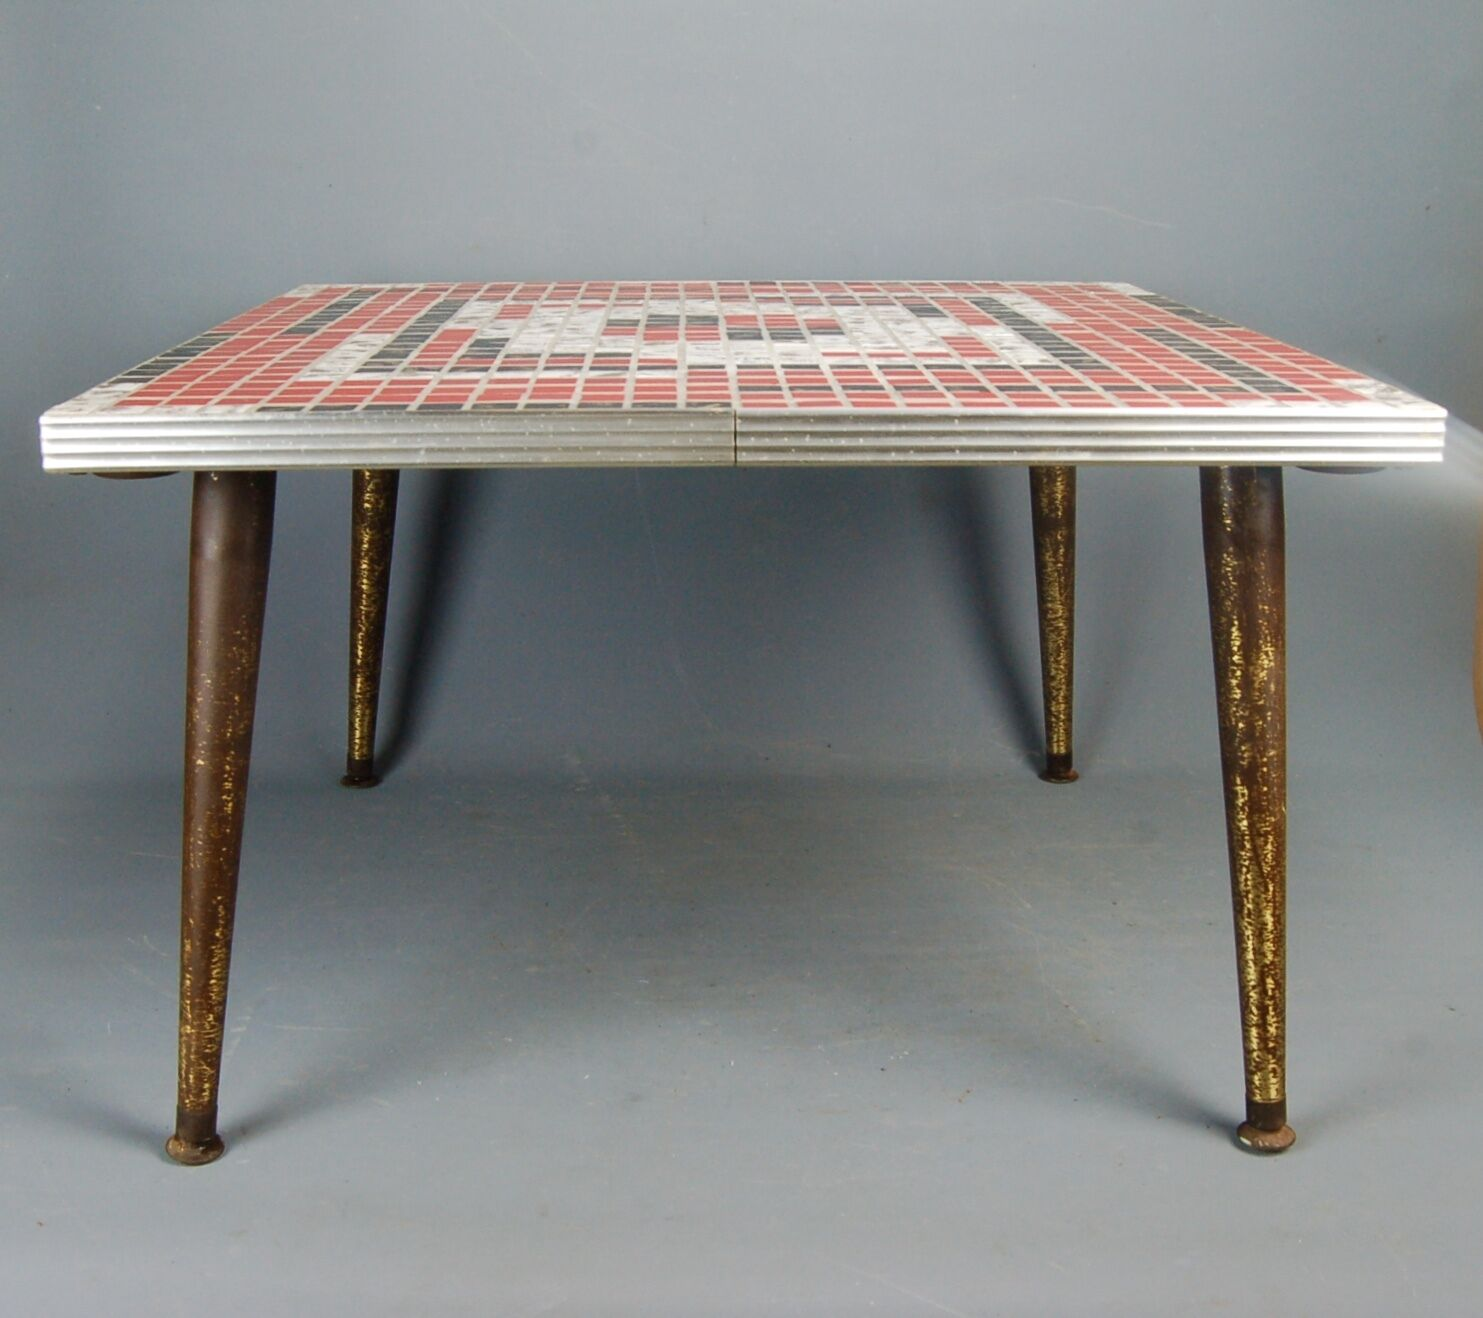 vintage Mid Century Modern Red Black White Tile Mosaic Square Coffee Table 1950s